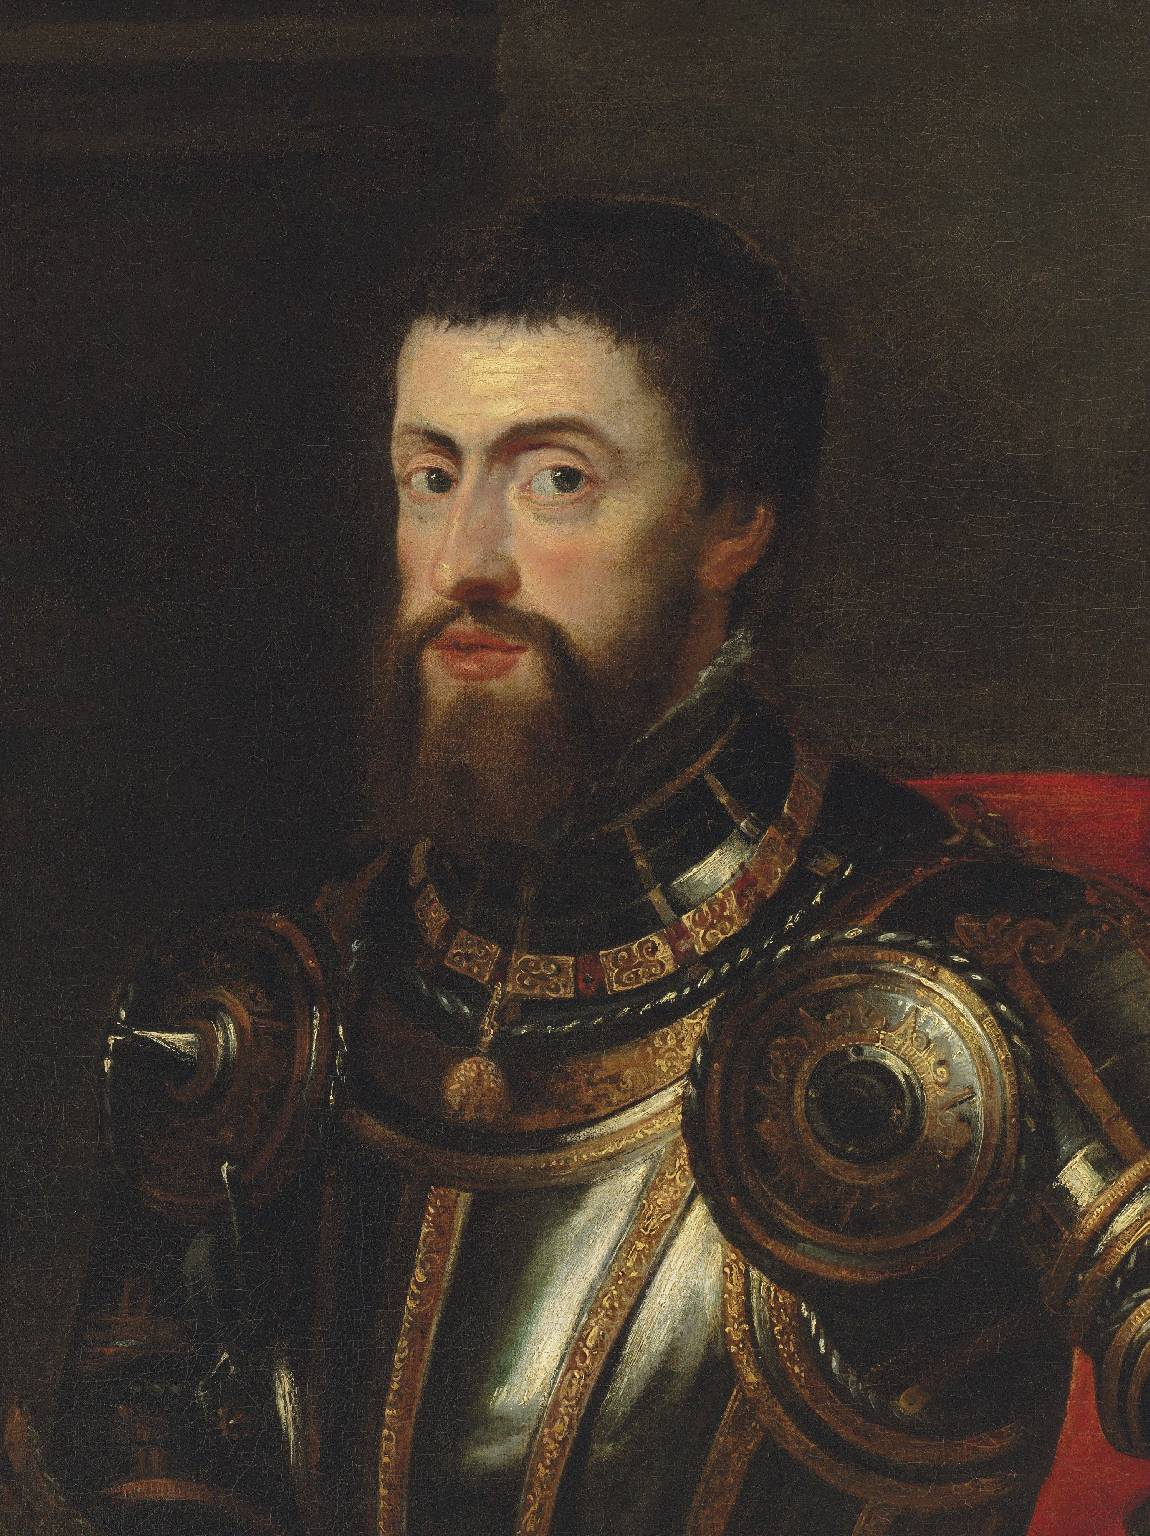 'The Emperor Charles V' by Sir Peter Paul Rubens